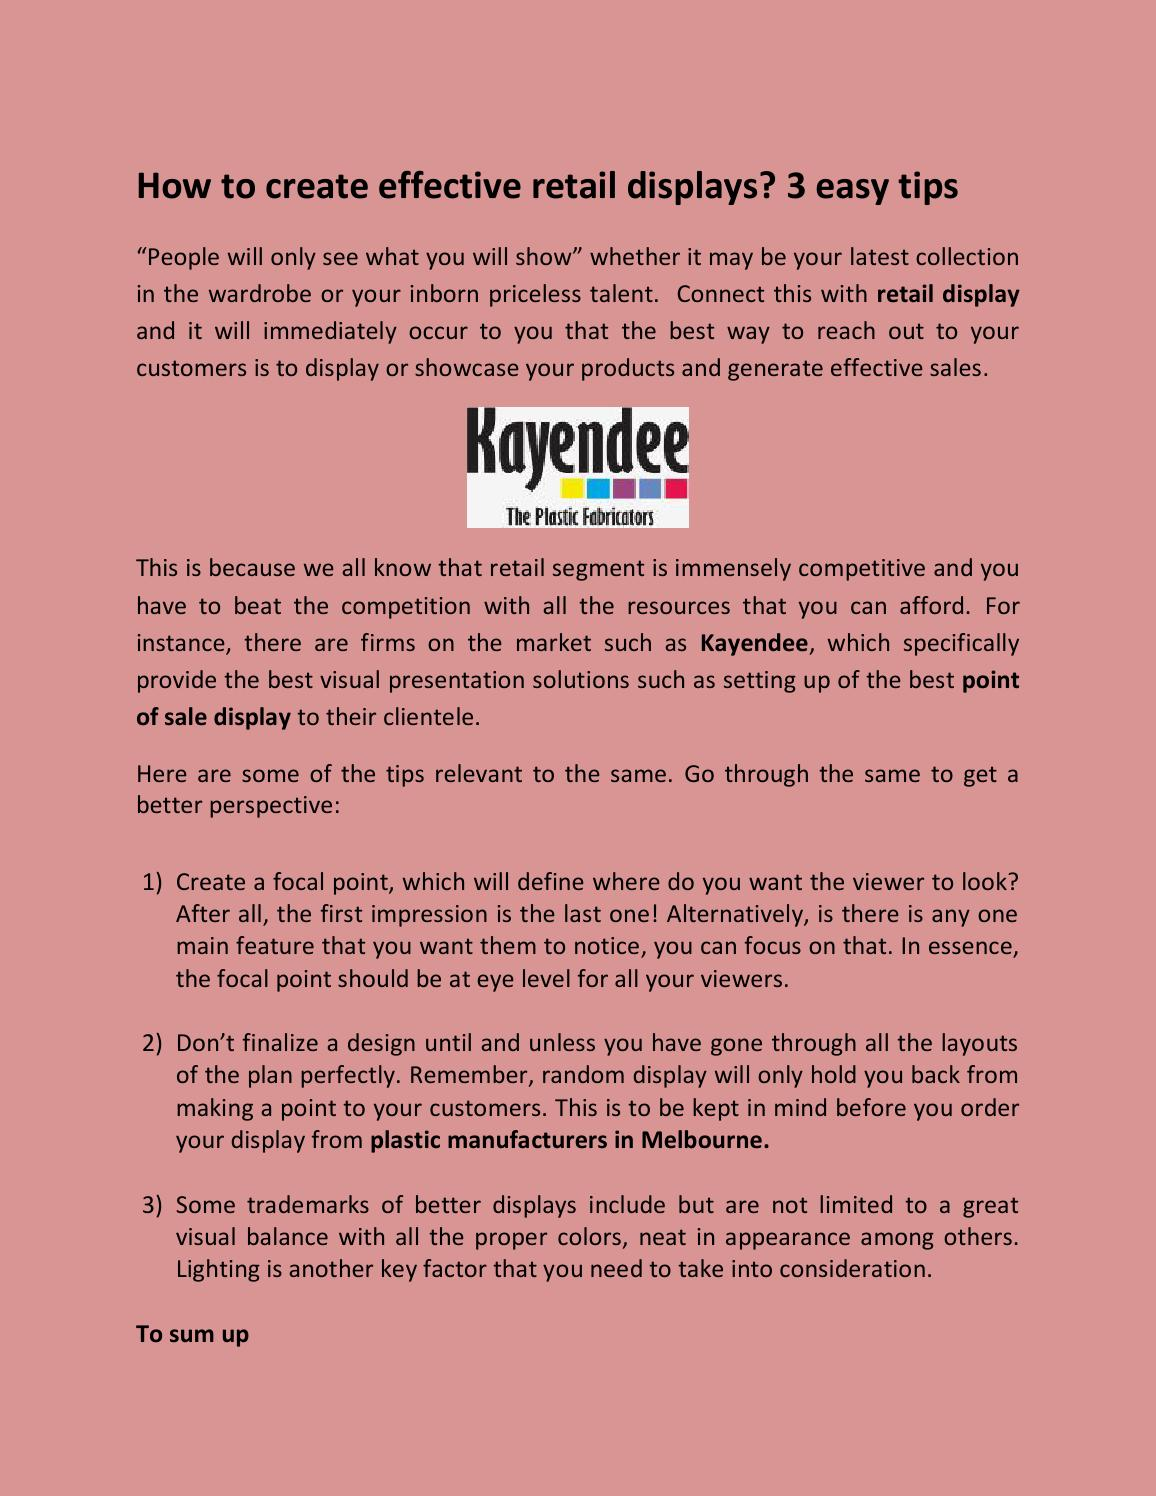 Create effective retail displays by acrylicmelbourne - issuu